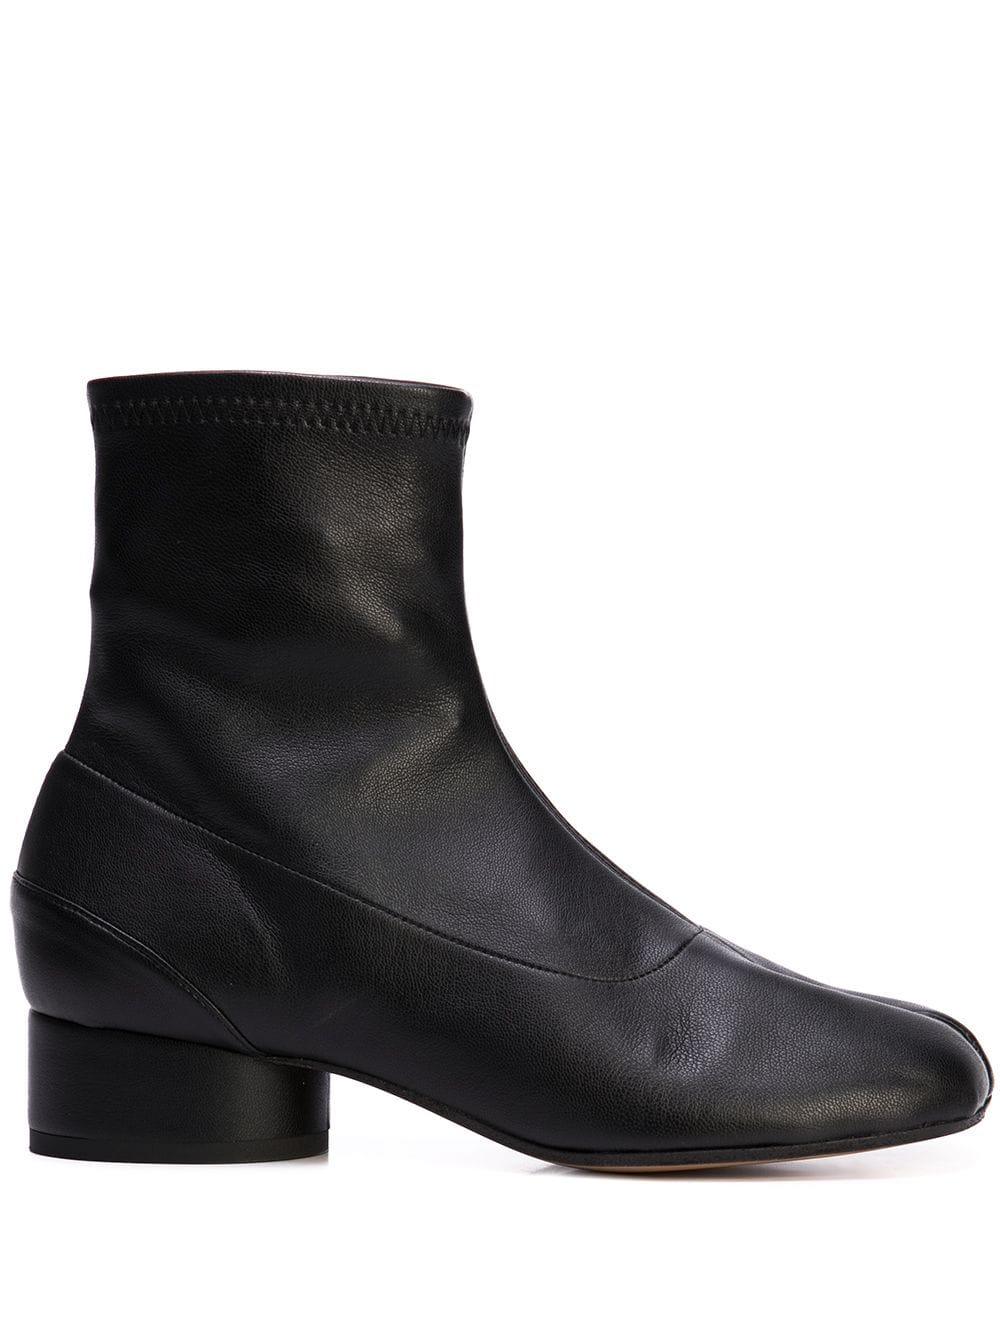 MAISON MARGIELA WOMEN STRETCH LEATHER TABI BOOTS LOW HEEL